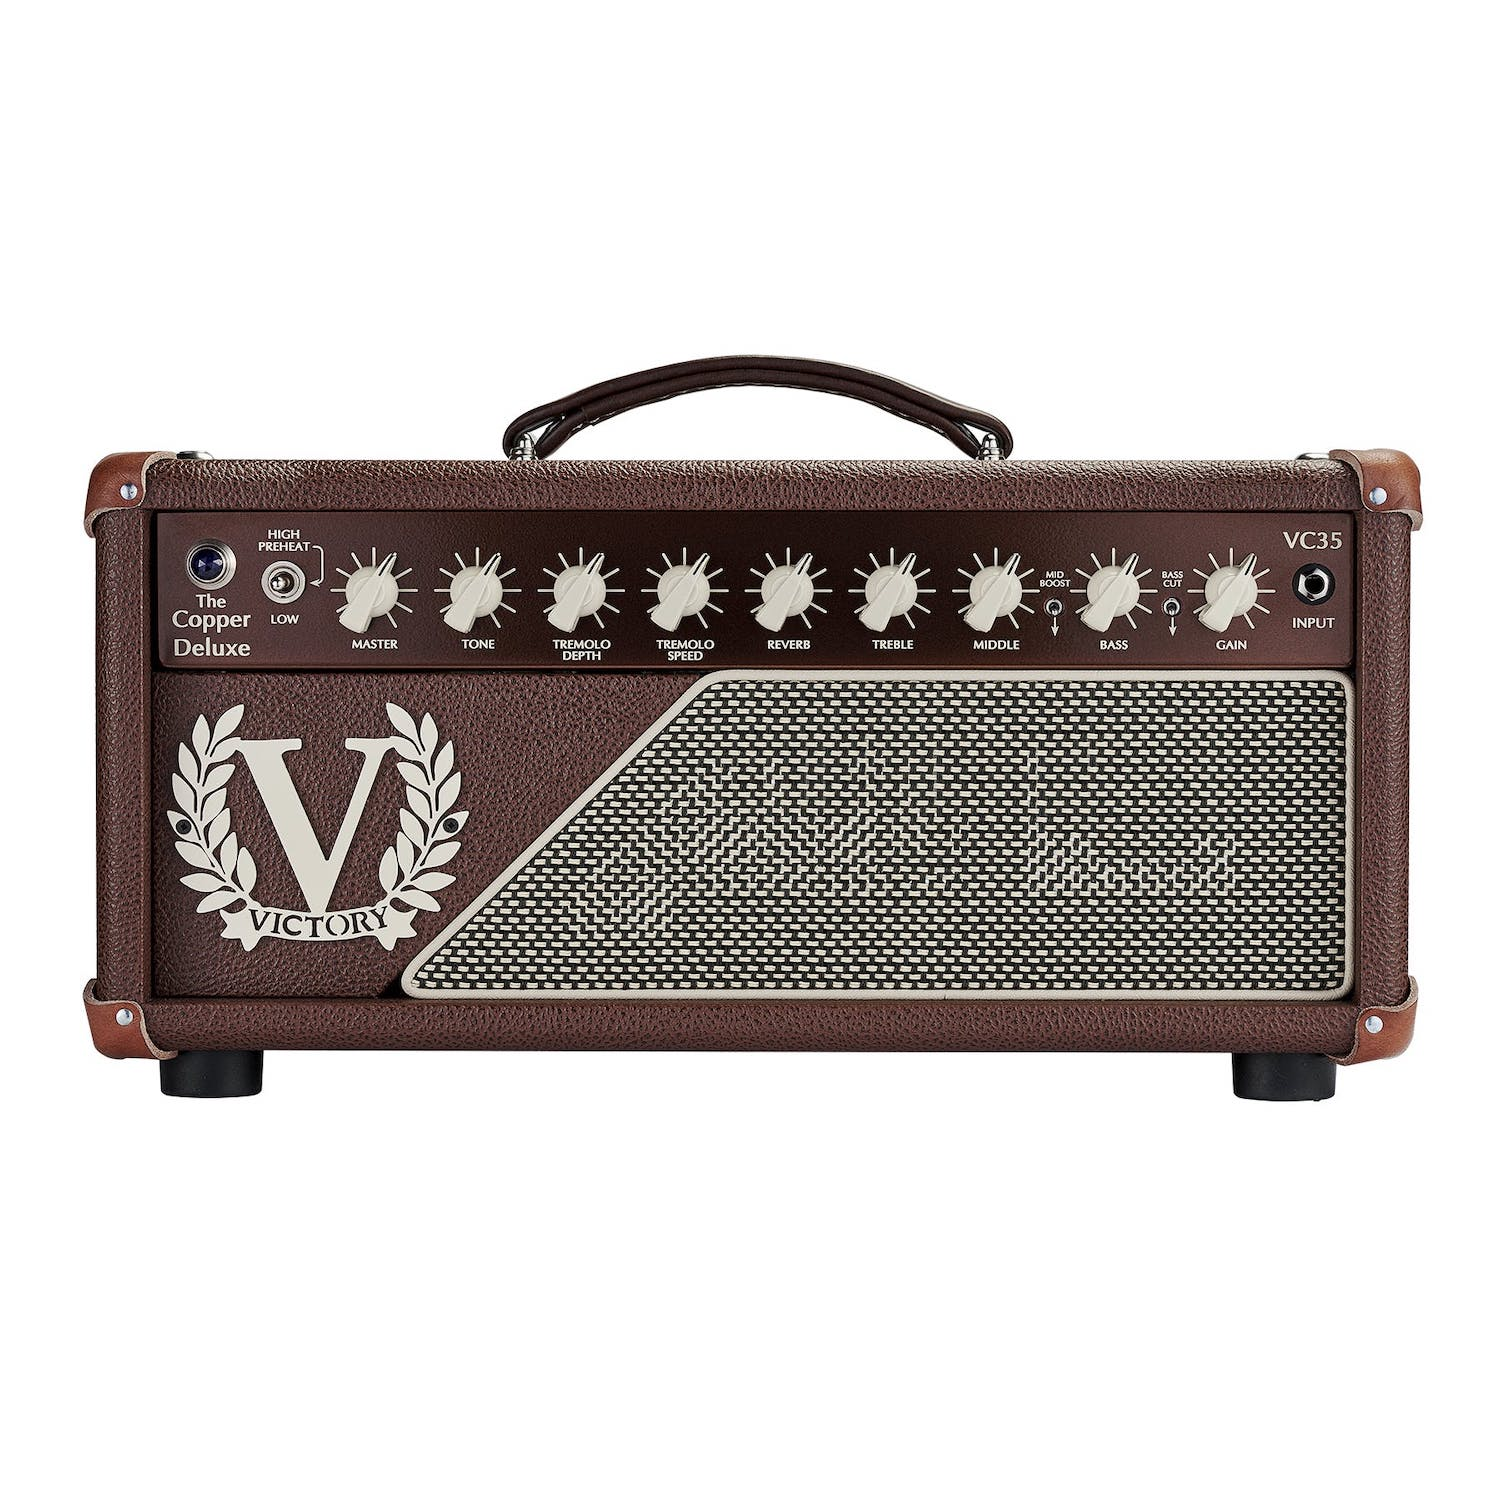 Victory VC35 The Copper Deluxe Head